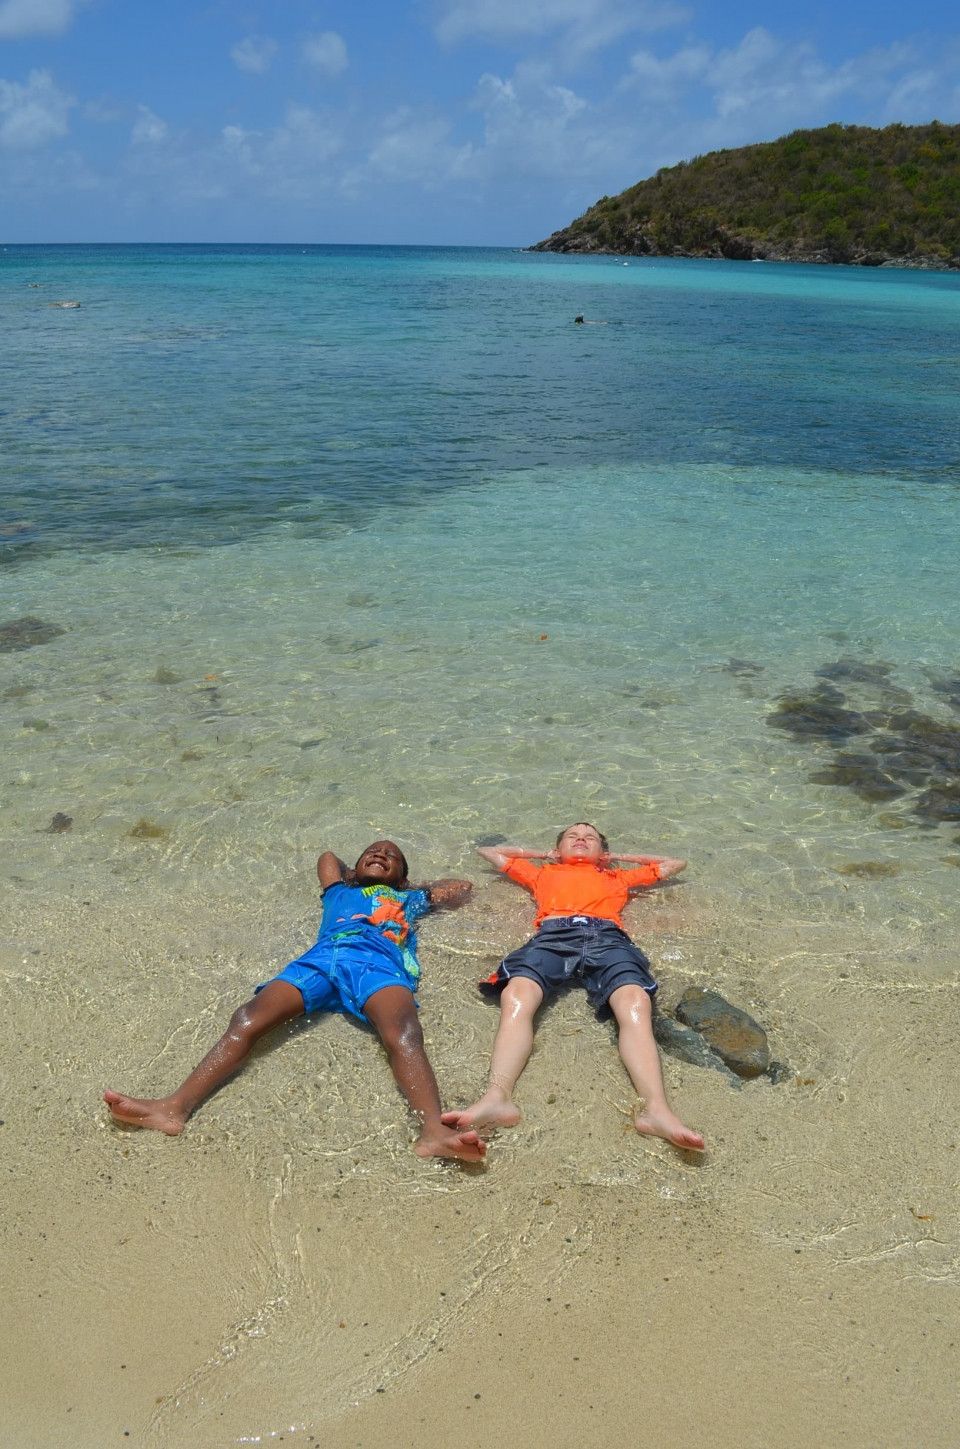 Every Kid in a Park winner image, One African American boy and one Caucasian boy lying on their backs in the water on a beach at the Virgin Islands